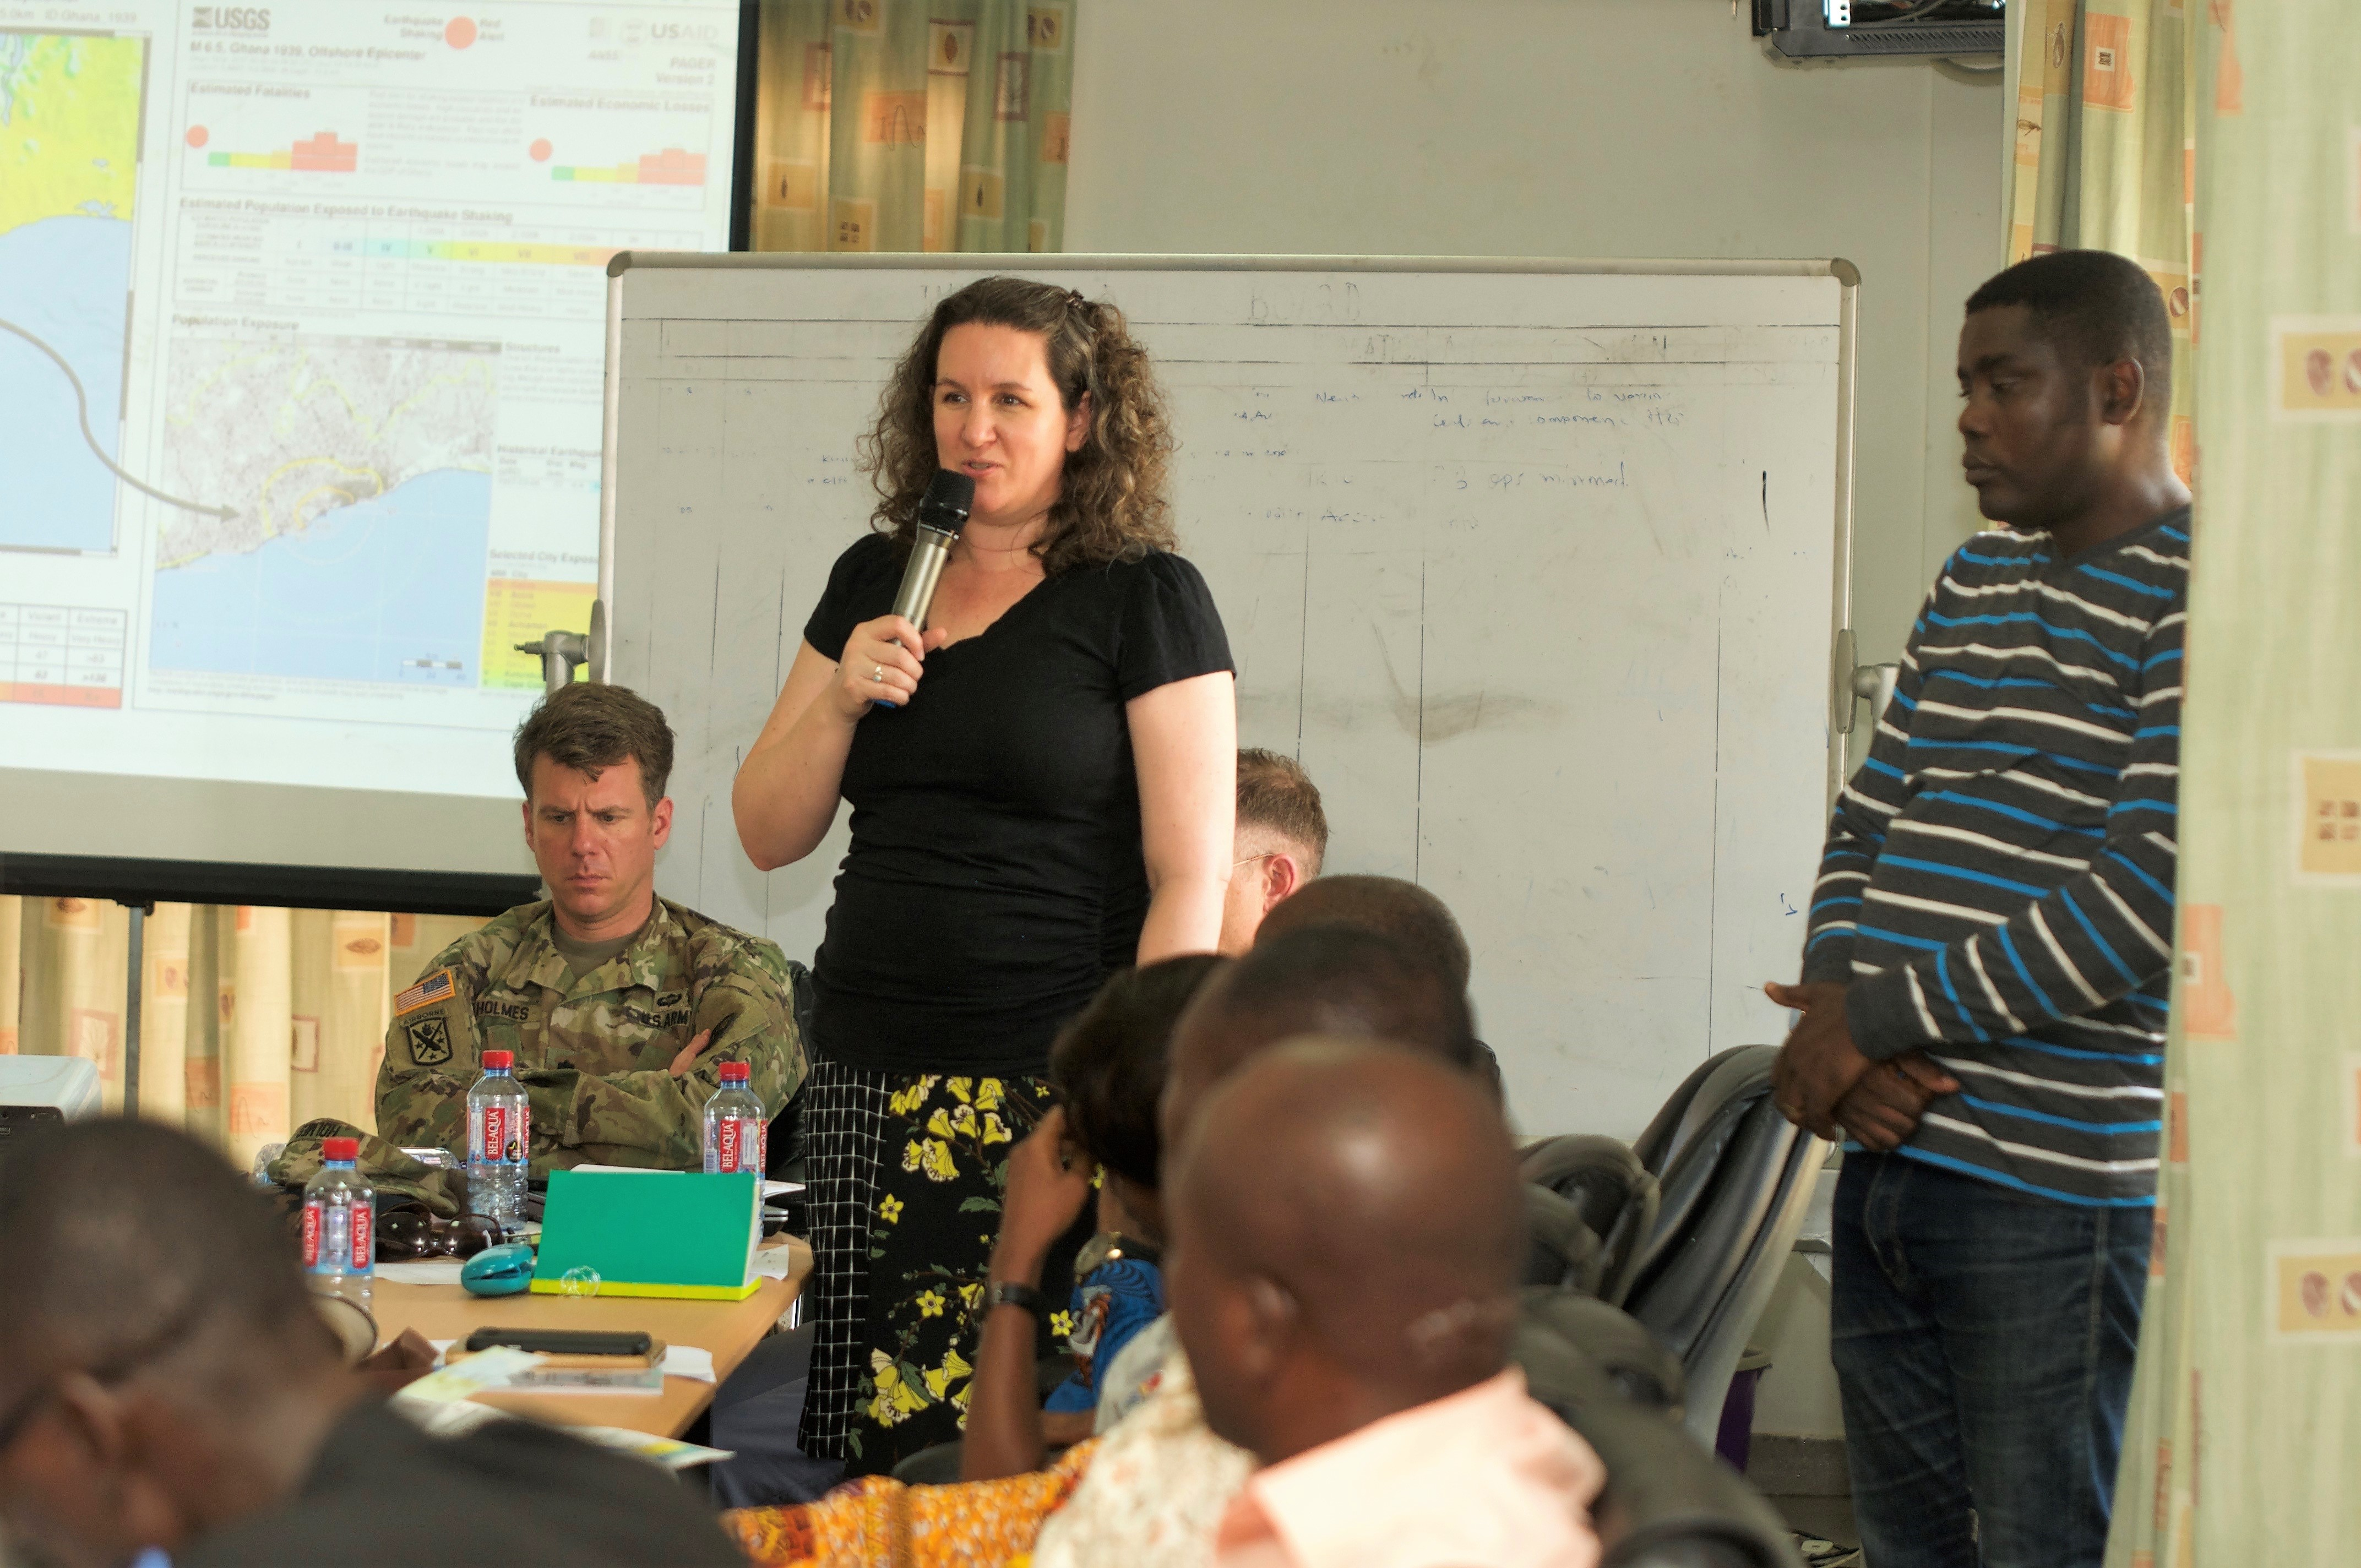 U.S. Africa Command Foreign Policy Advisor Robin Cromer discusses embassy coordination during a tabletop exercise. AFRICOM and Ghana's National Disaster Management Organization (NADMO) co-sponsored a natural disaster response forum in Accra.  The event brought together experts in disaster management from multiple organizations in Ghana and the U.S. and was conducted at the Ghana Armed Forces Command and Staff College, March 12-15, 2018. (U.S. AFRICOM photo)